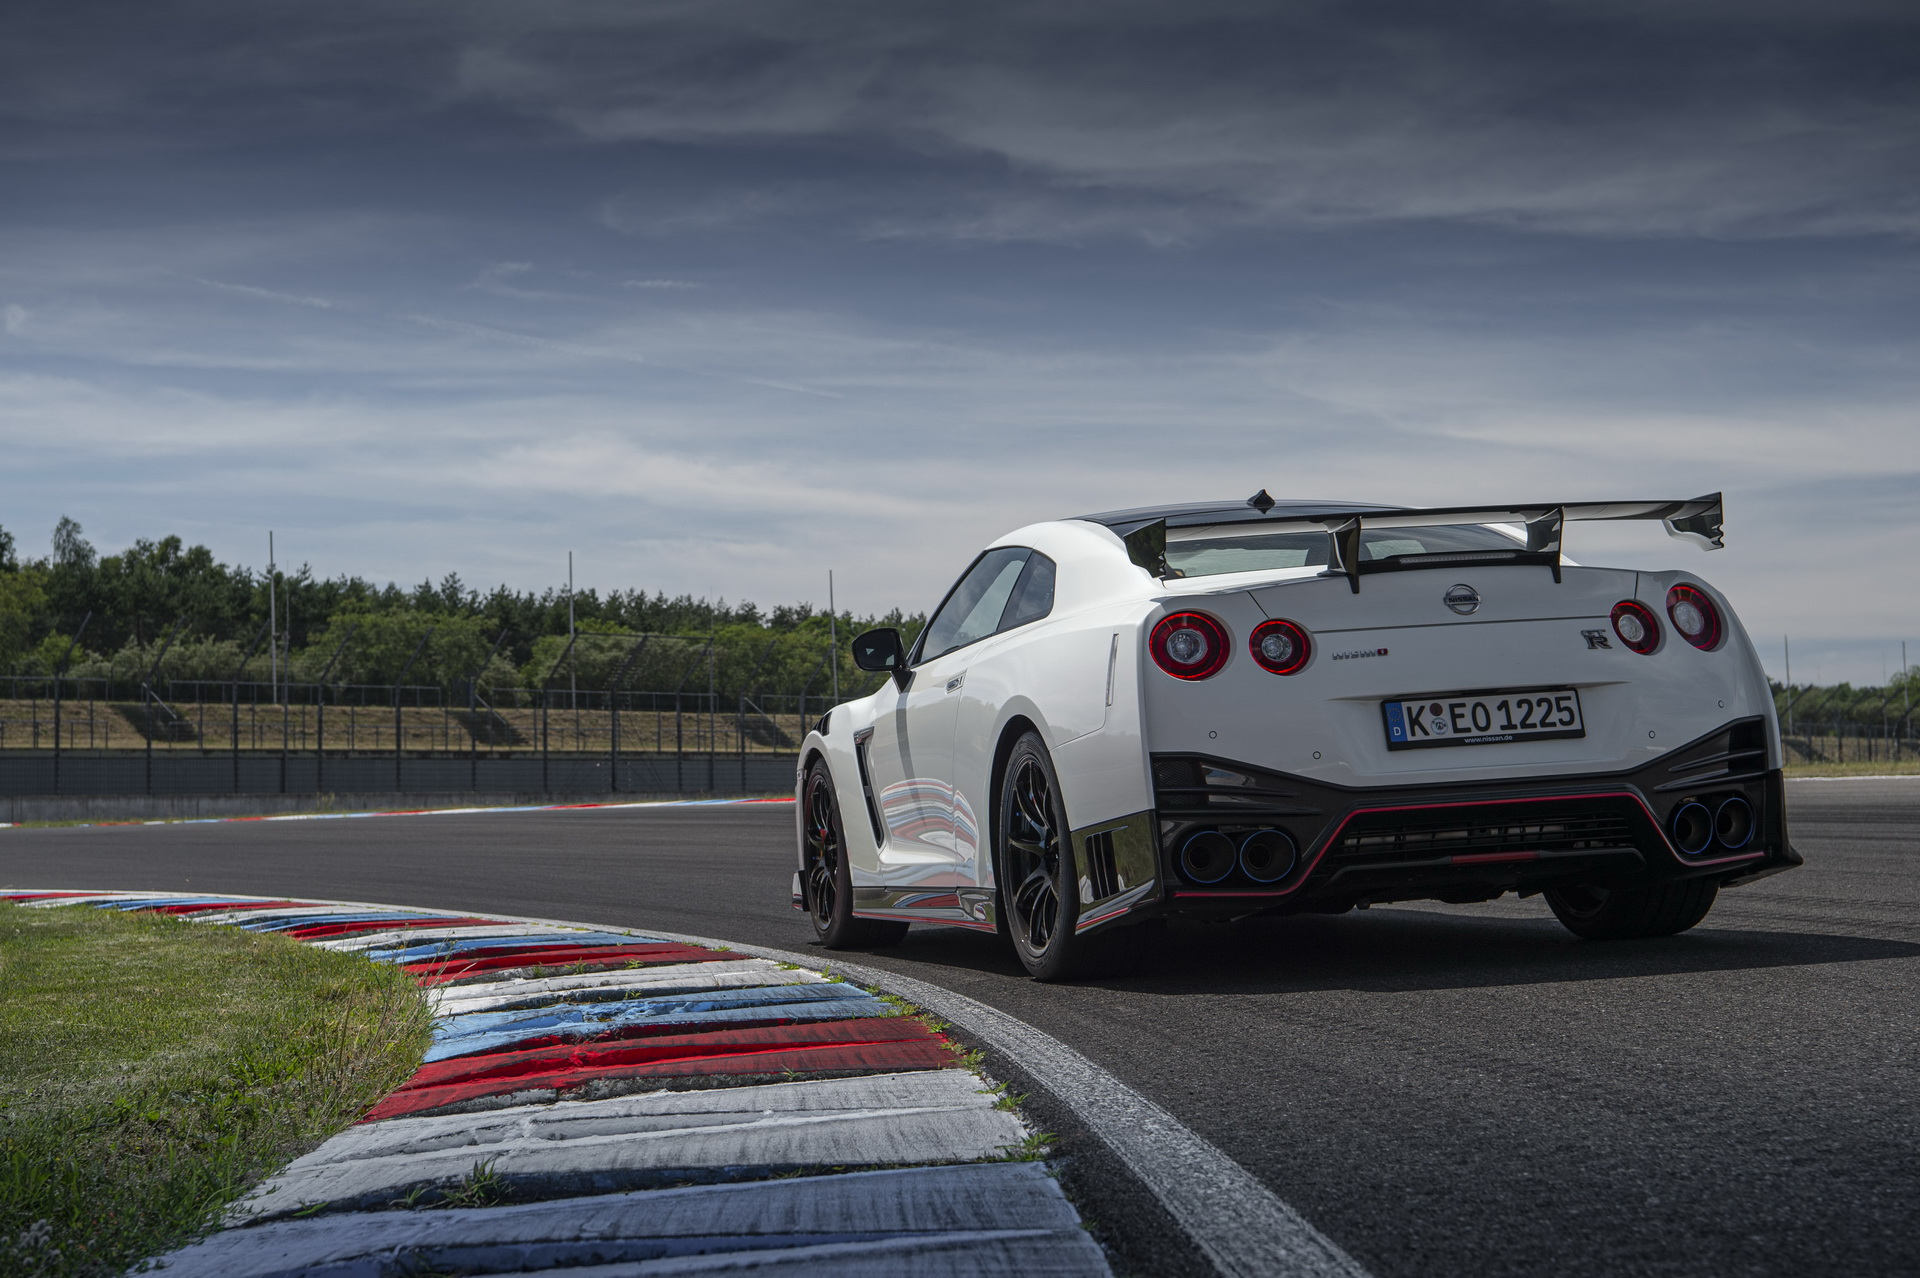 2020 Nissan Gt R Nismo Gets Steep 175k Price Tag In The Uk